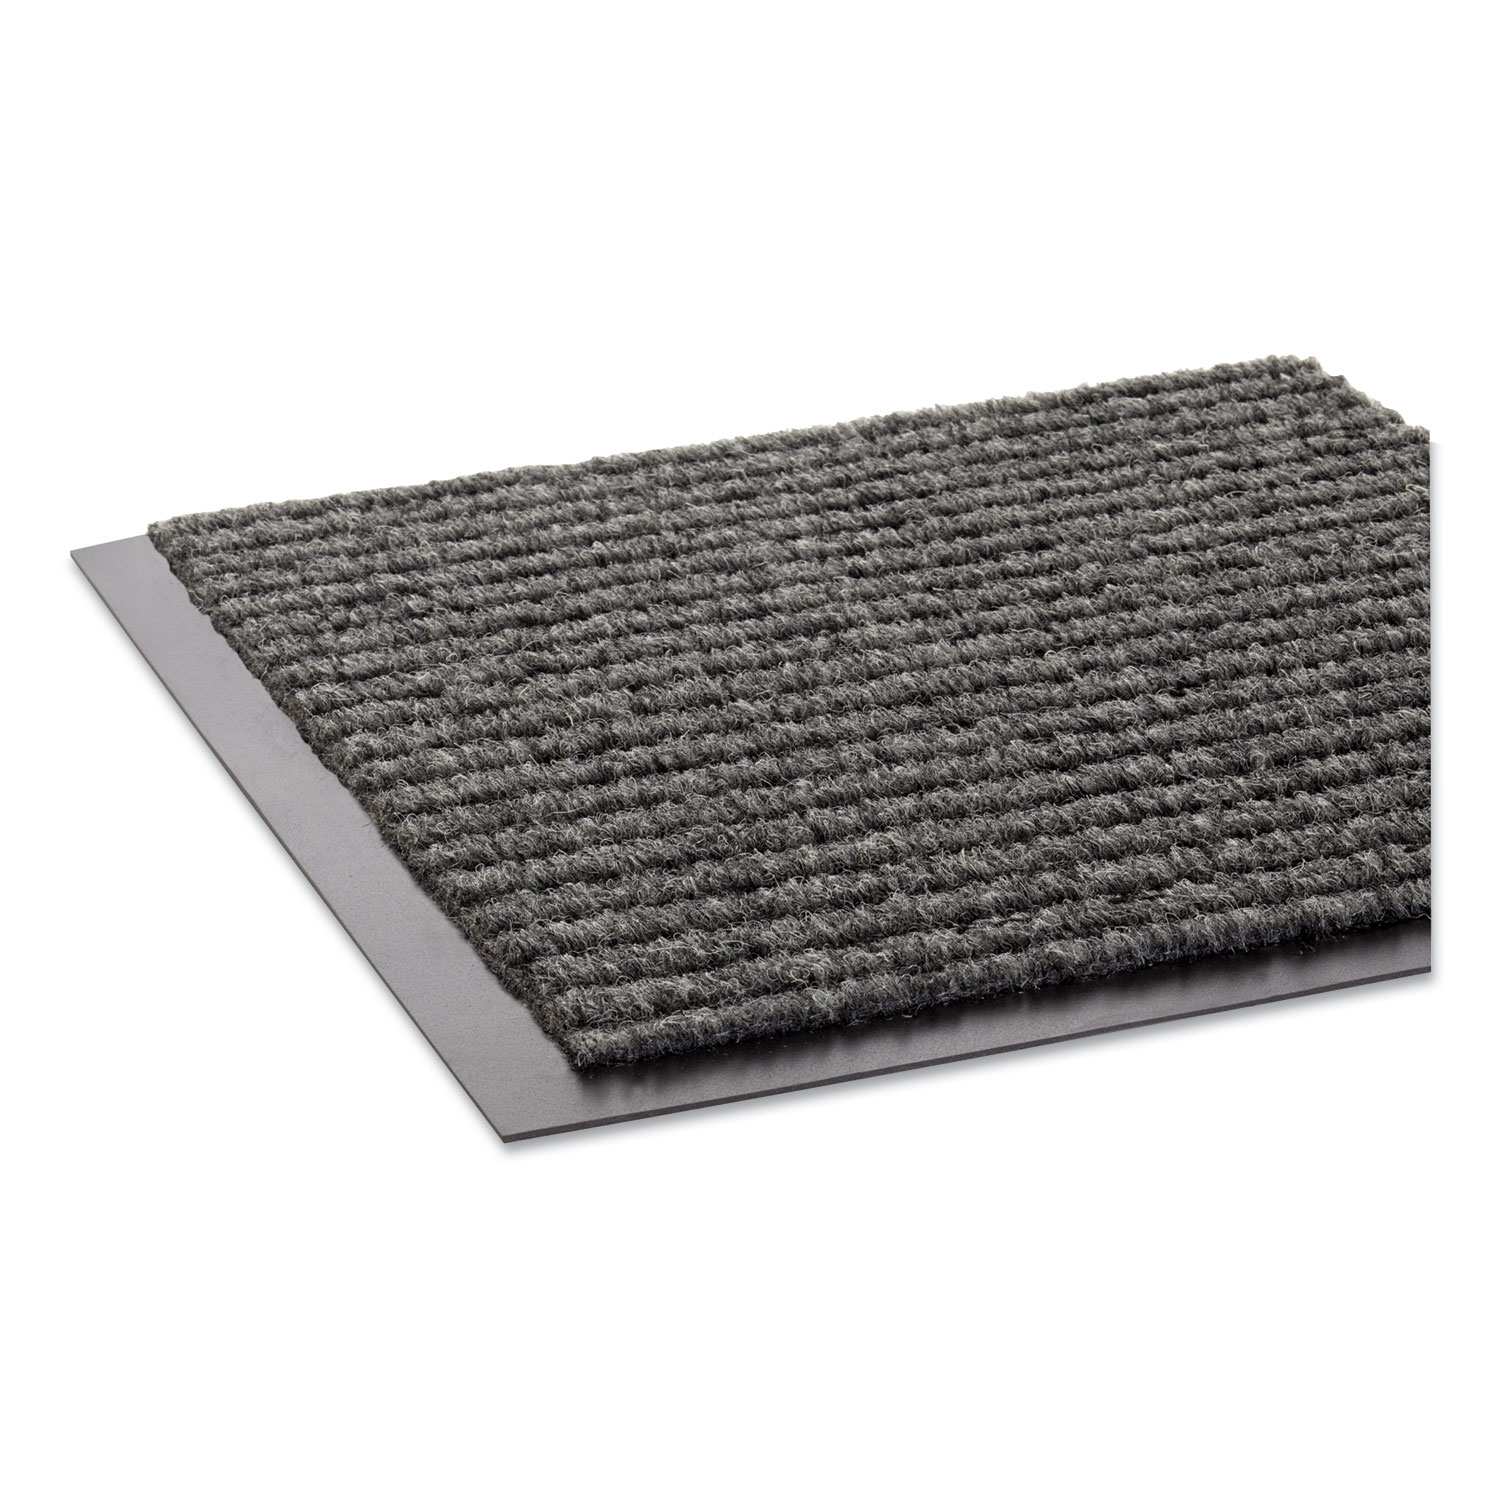 office chair mat 36 x 60 used folding chairs needle rib wipe and scrape by crown cwnnr0035gy